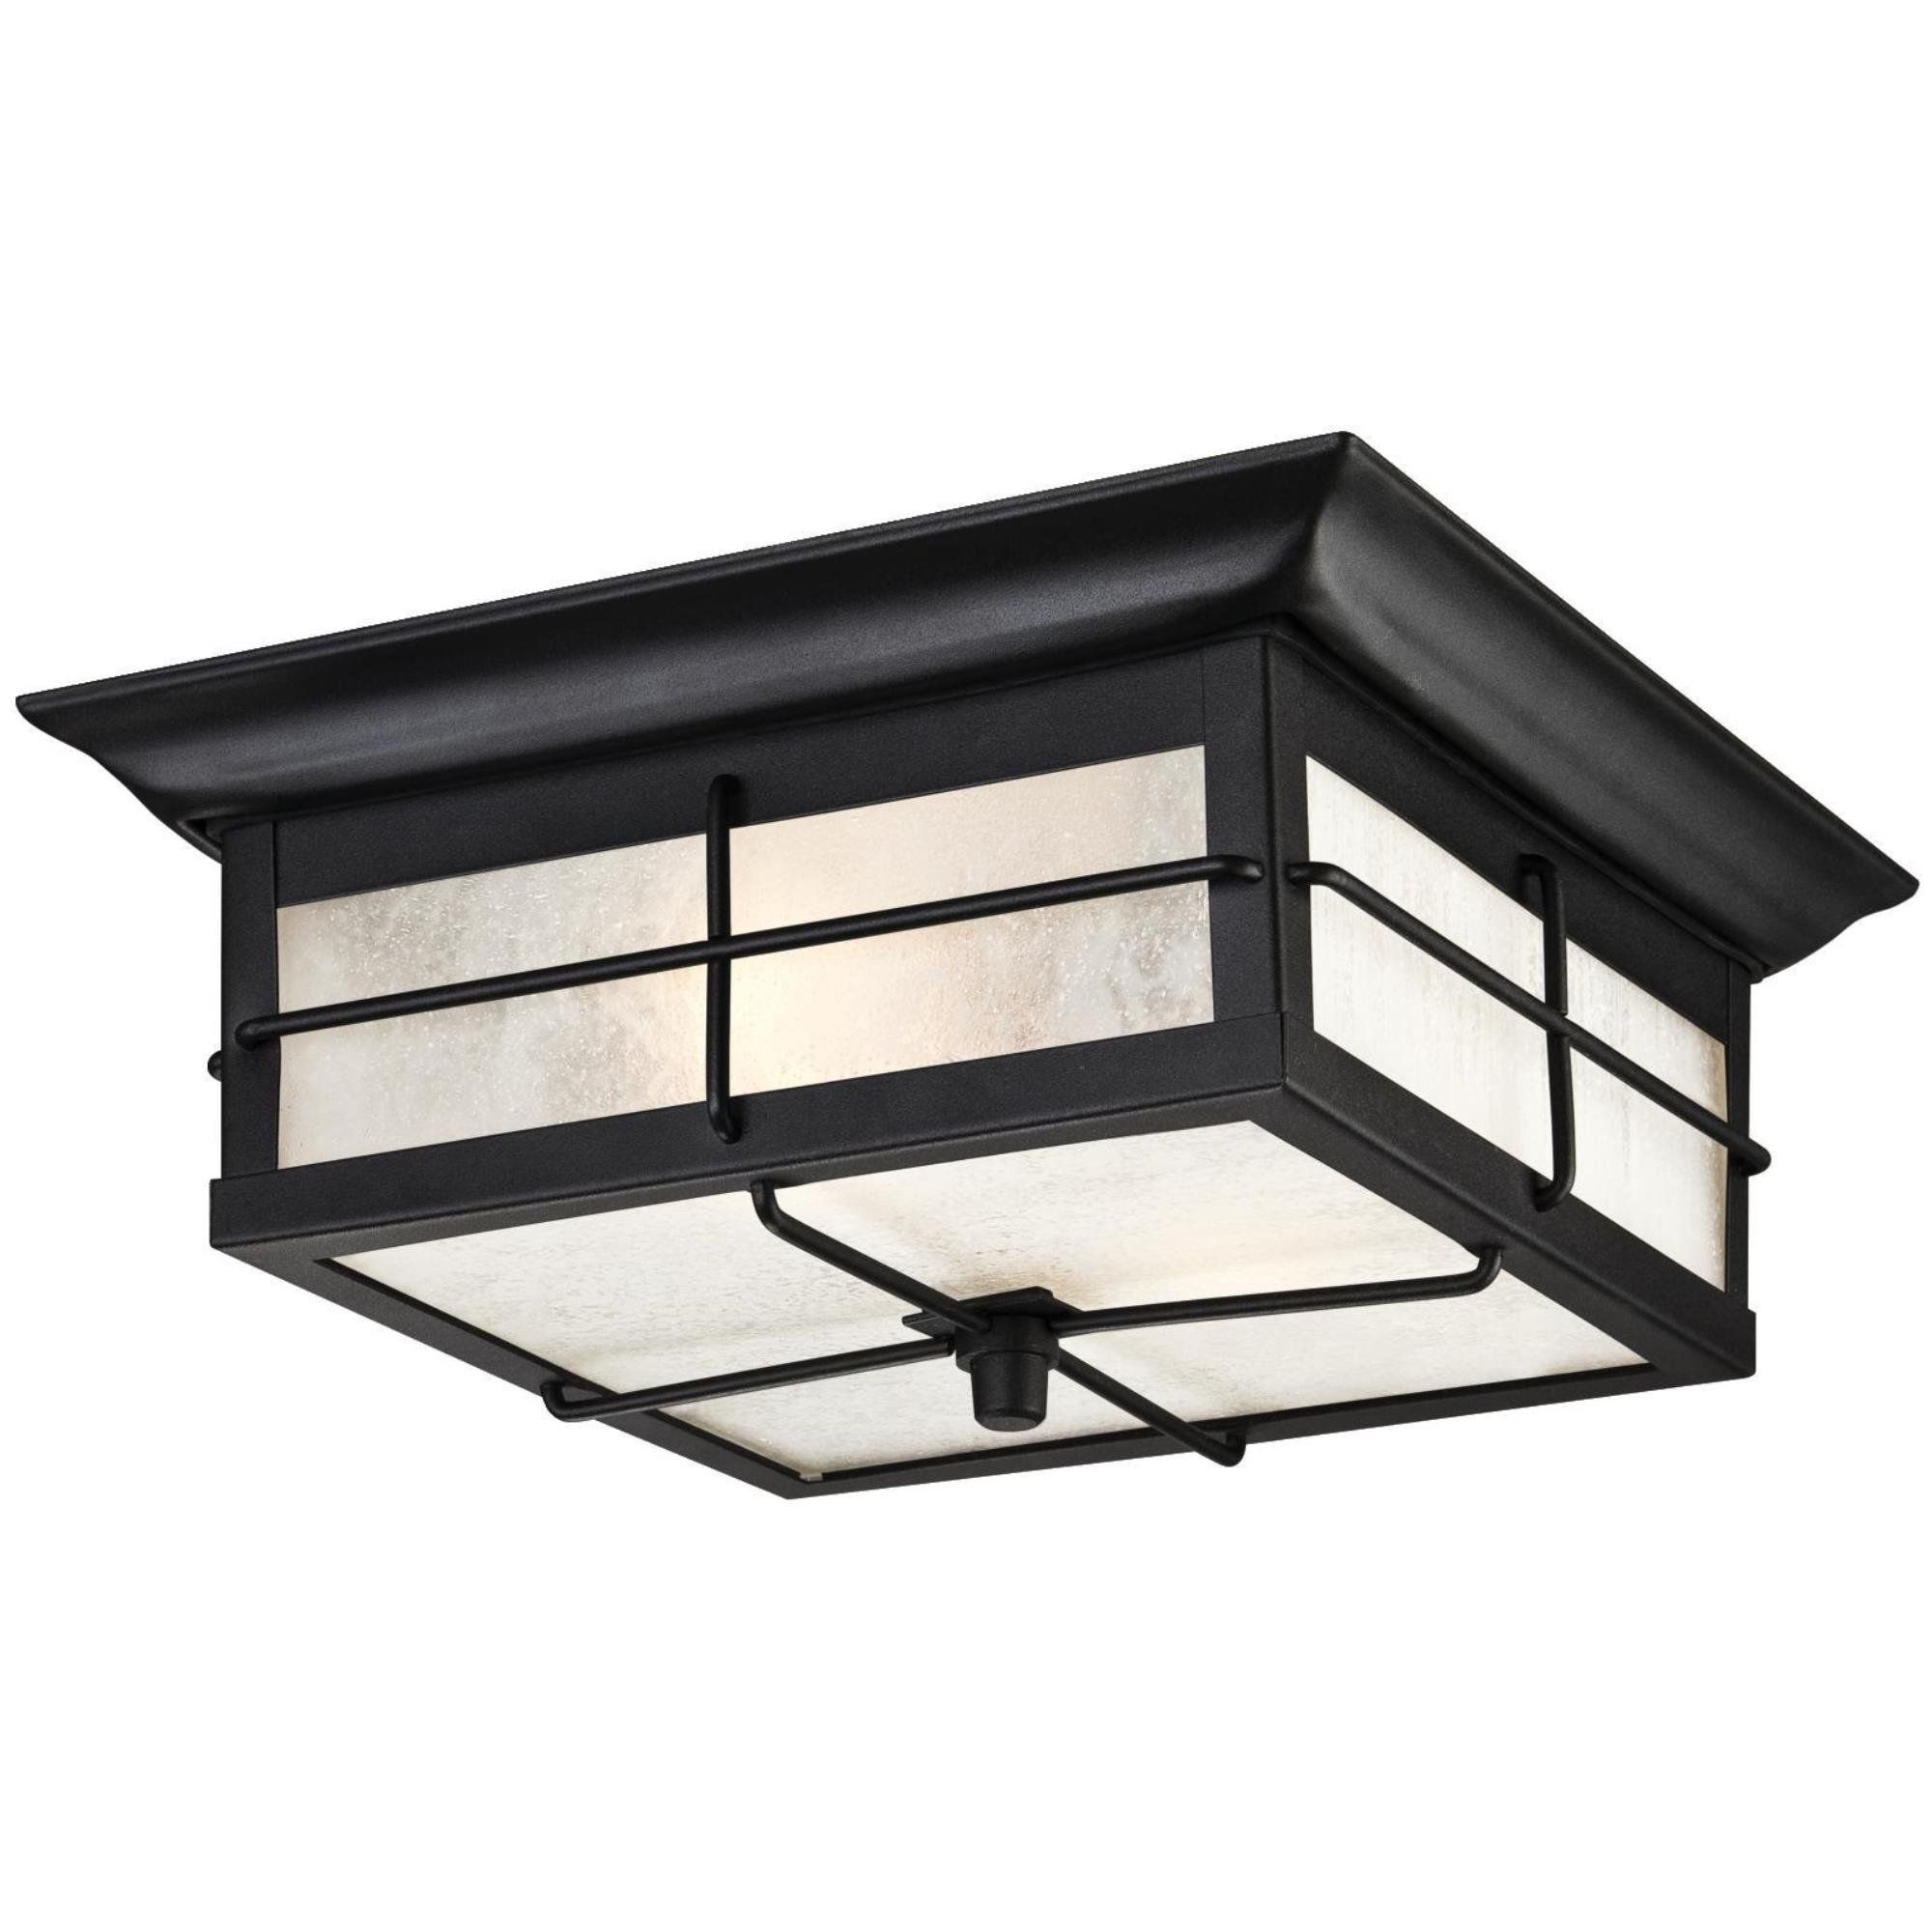 Westinghouse Orwell 2 Light Outdoor Flush Mount Fixture